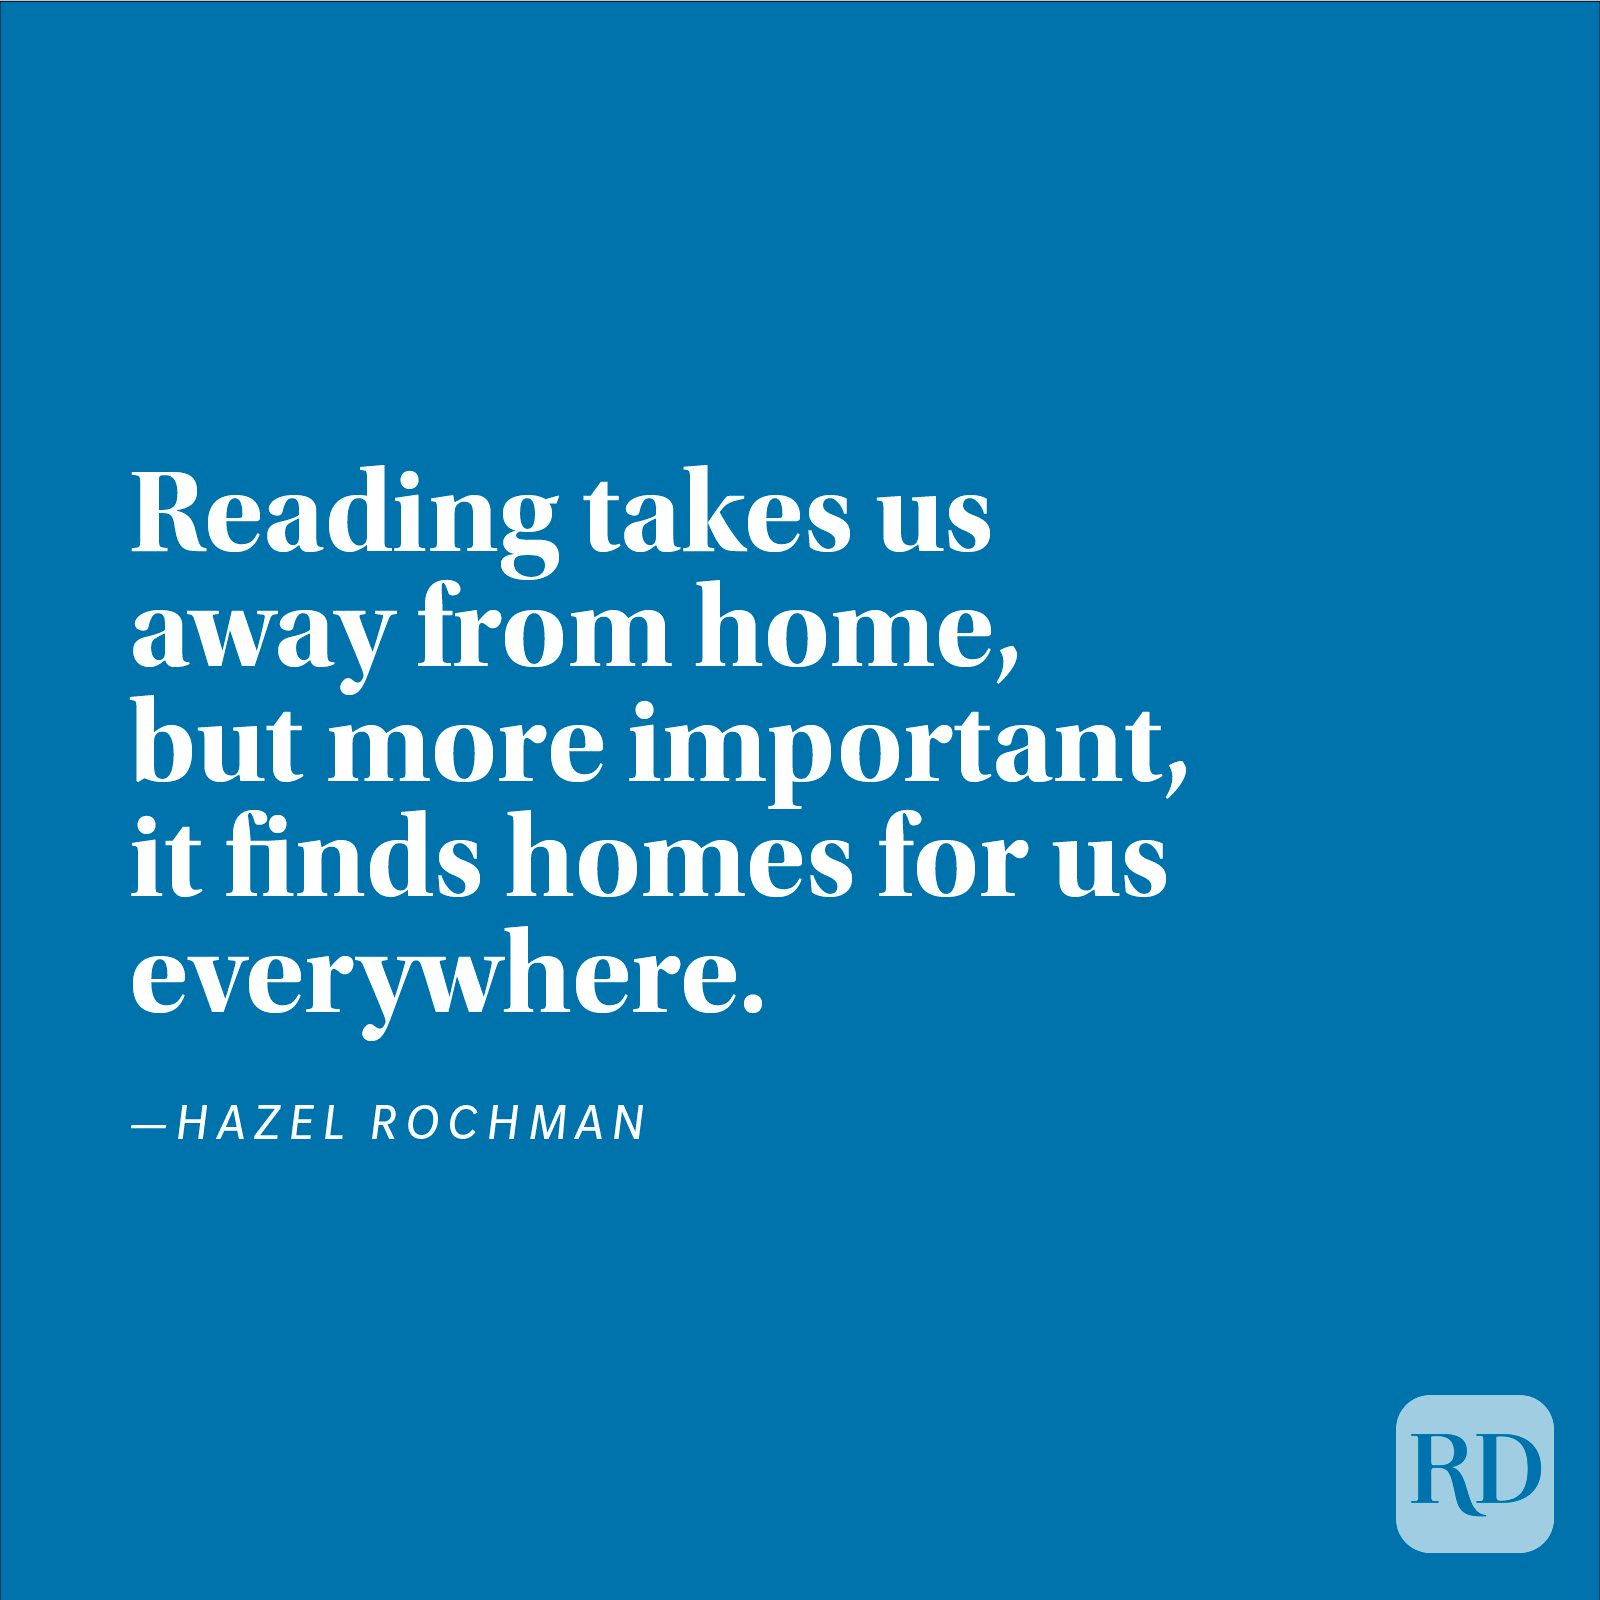 """Reading takes us away from home, but more important, it finds homes for us everywhere."" —Hazel Rochman"